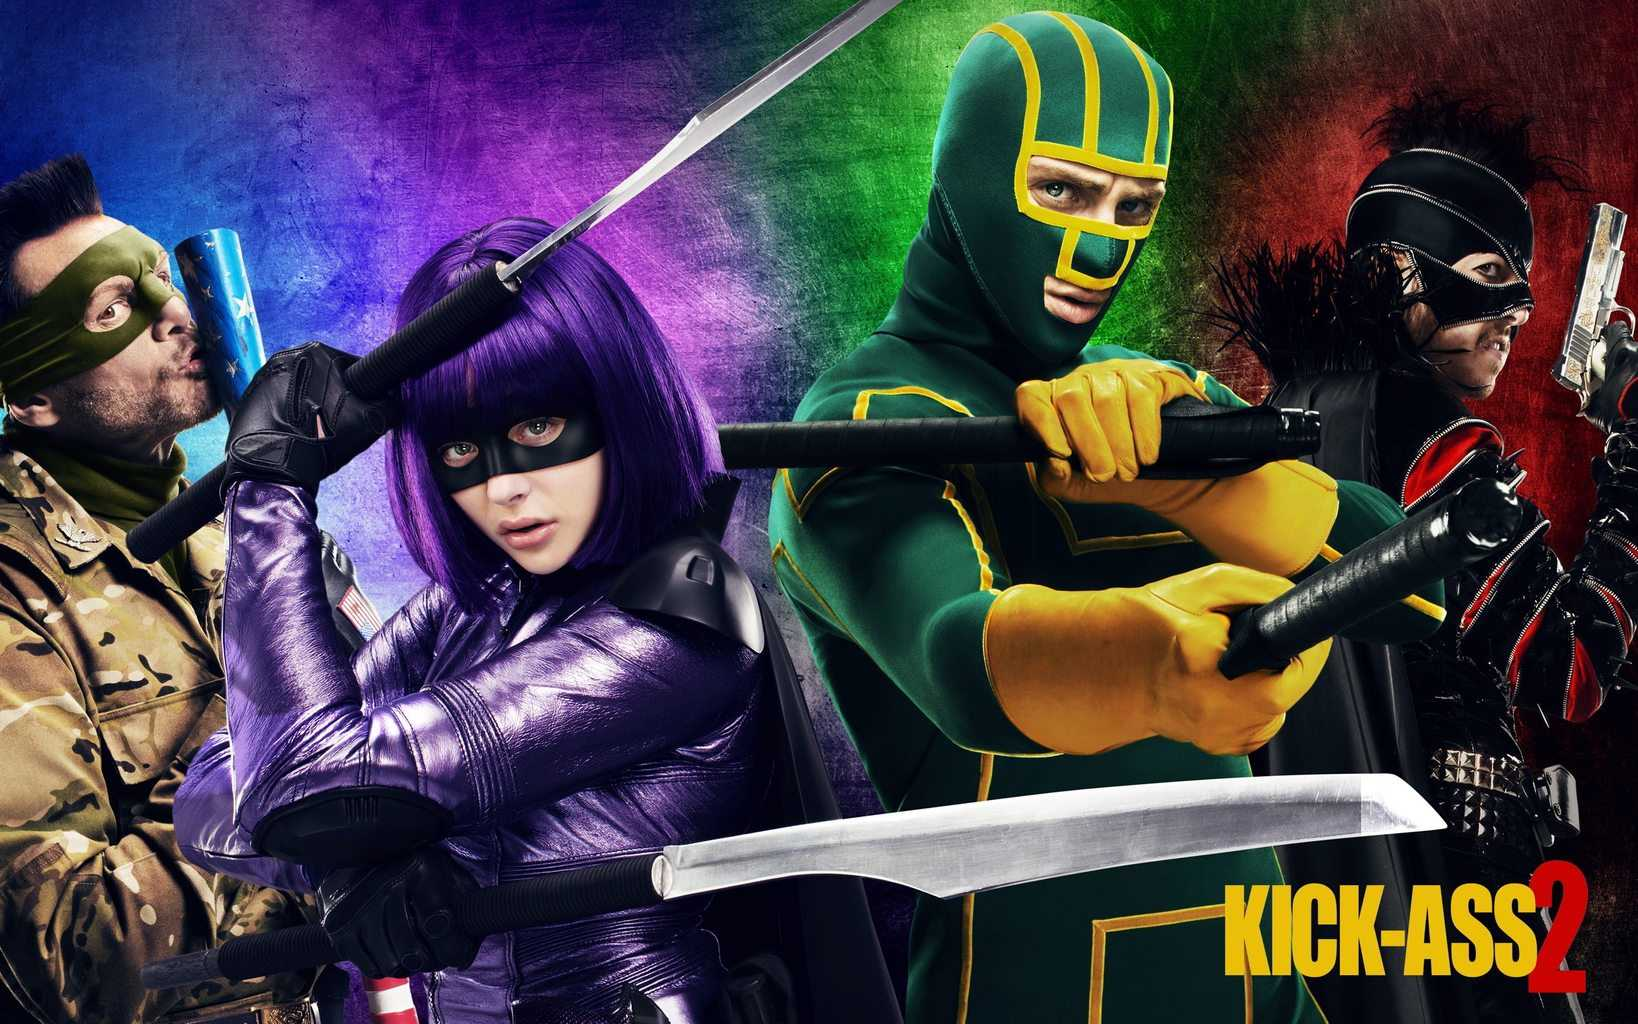 film reviews | movies | features | BRWC Kick Ass 2 Review